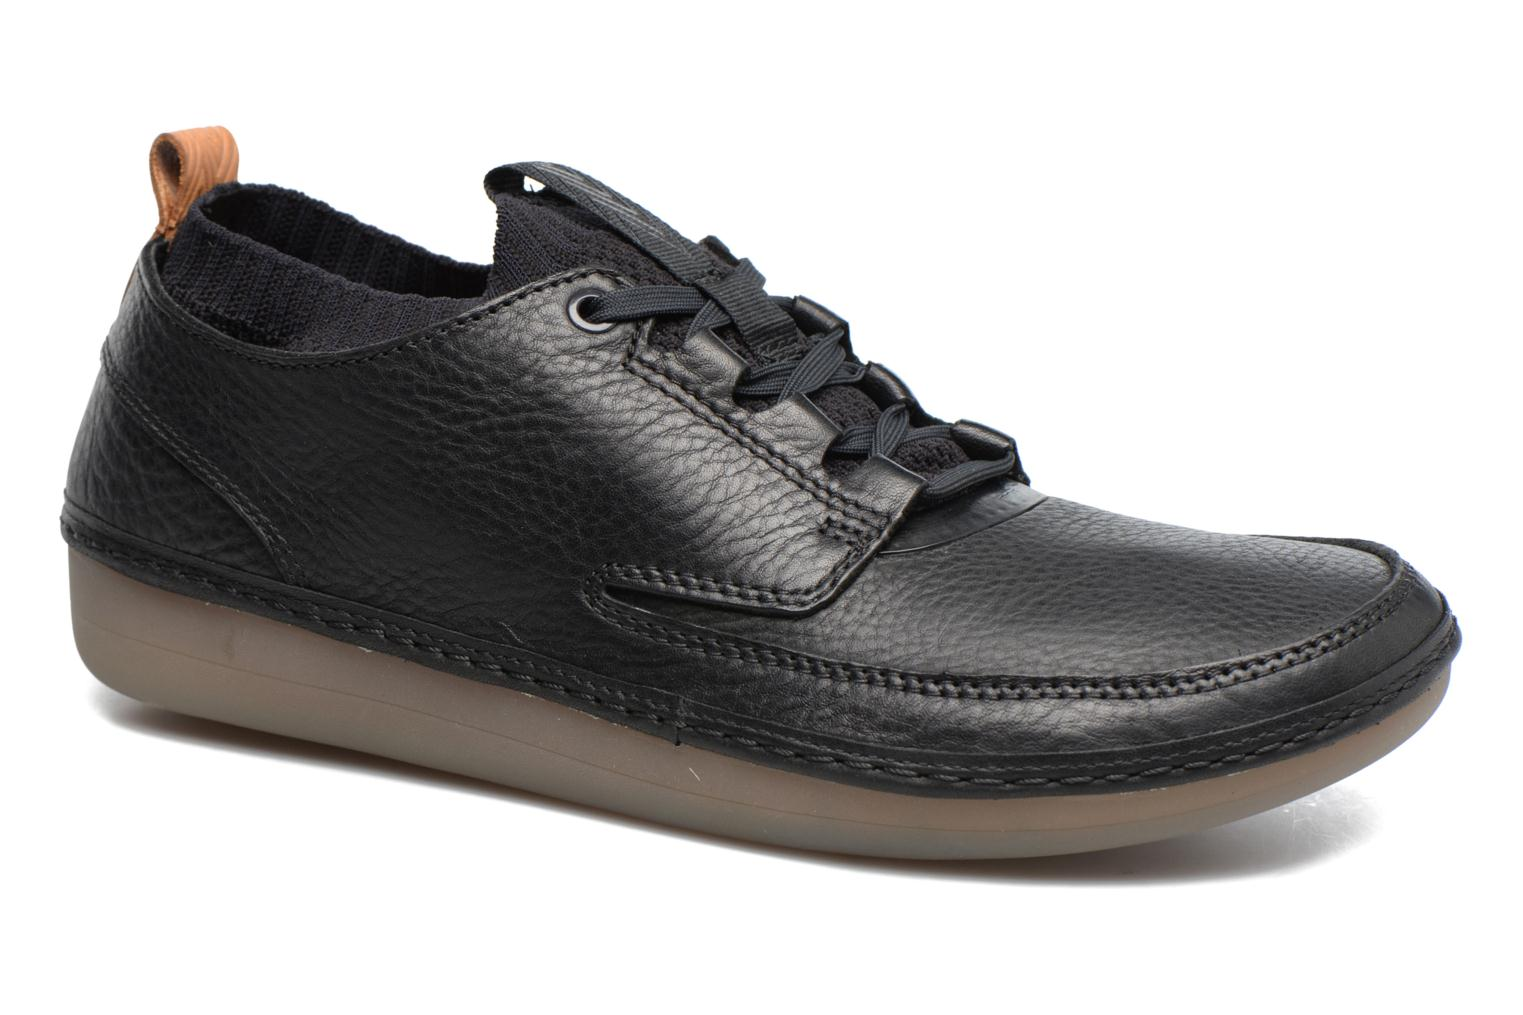 Black Nature Nature Clarks Black leather IV Clarks leather IV 6qU0Hxn